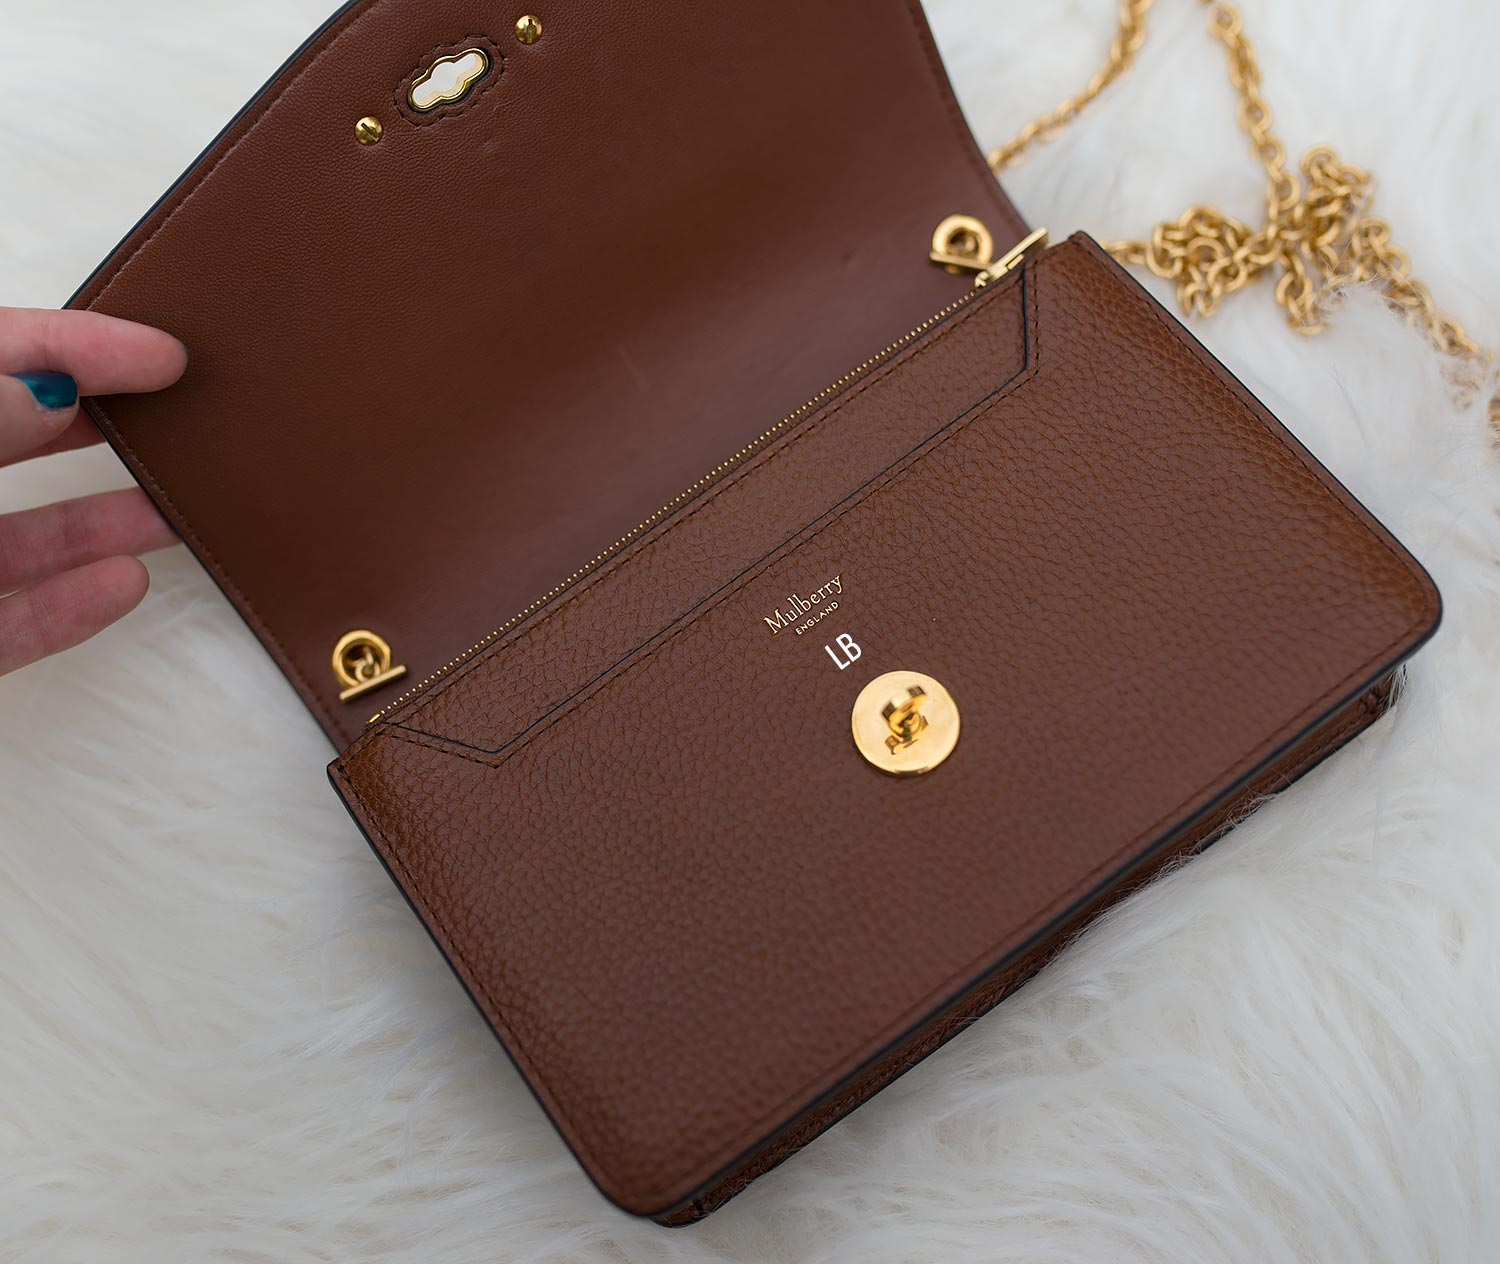 e4f4bed4c0df Click here to buy Mulberry Darley Bags online at Mulberry.com